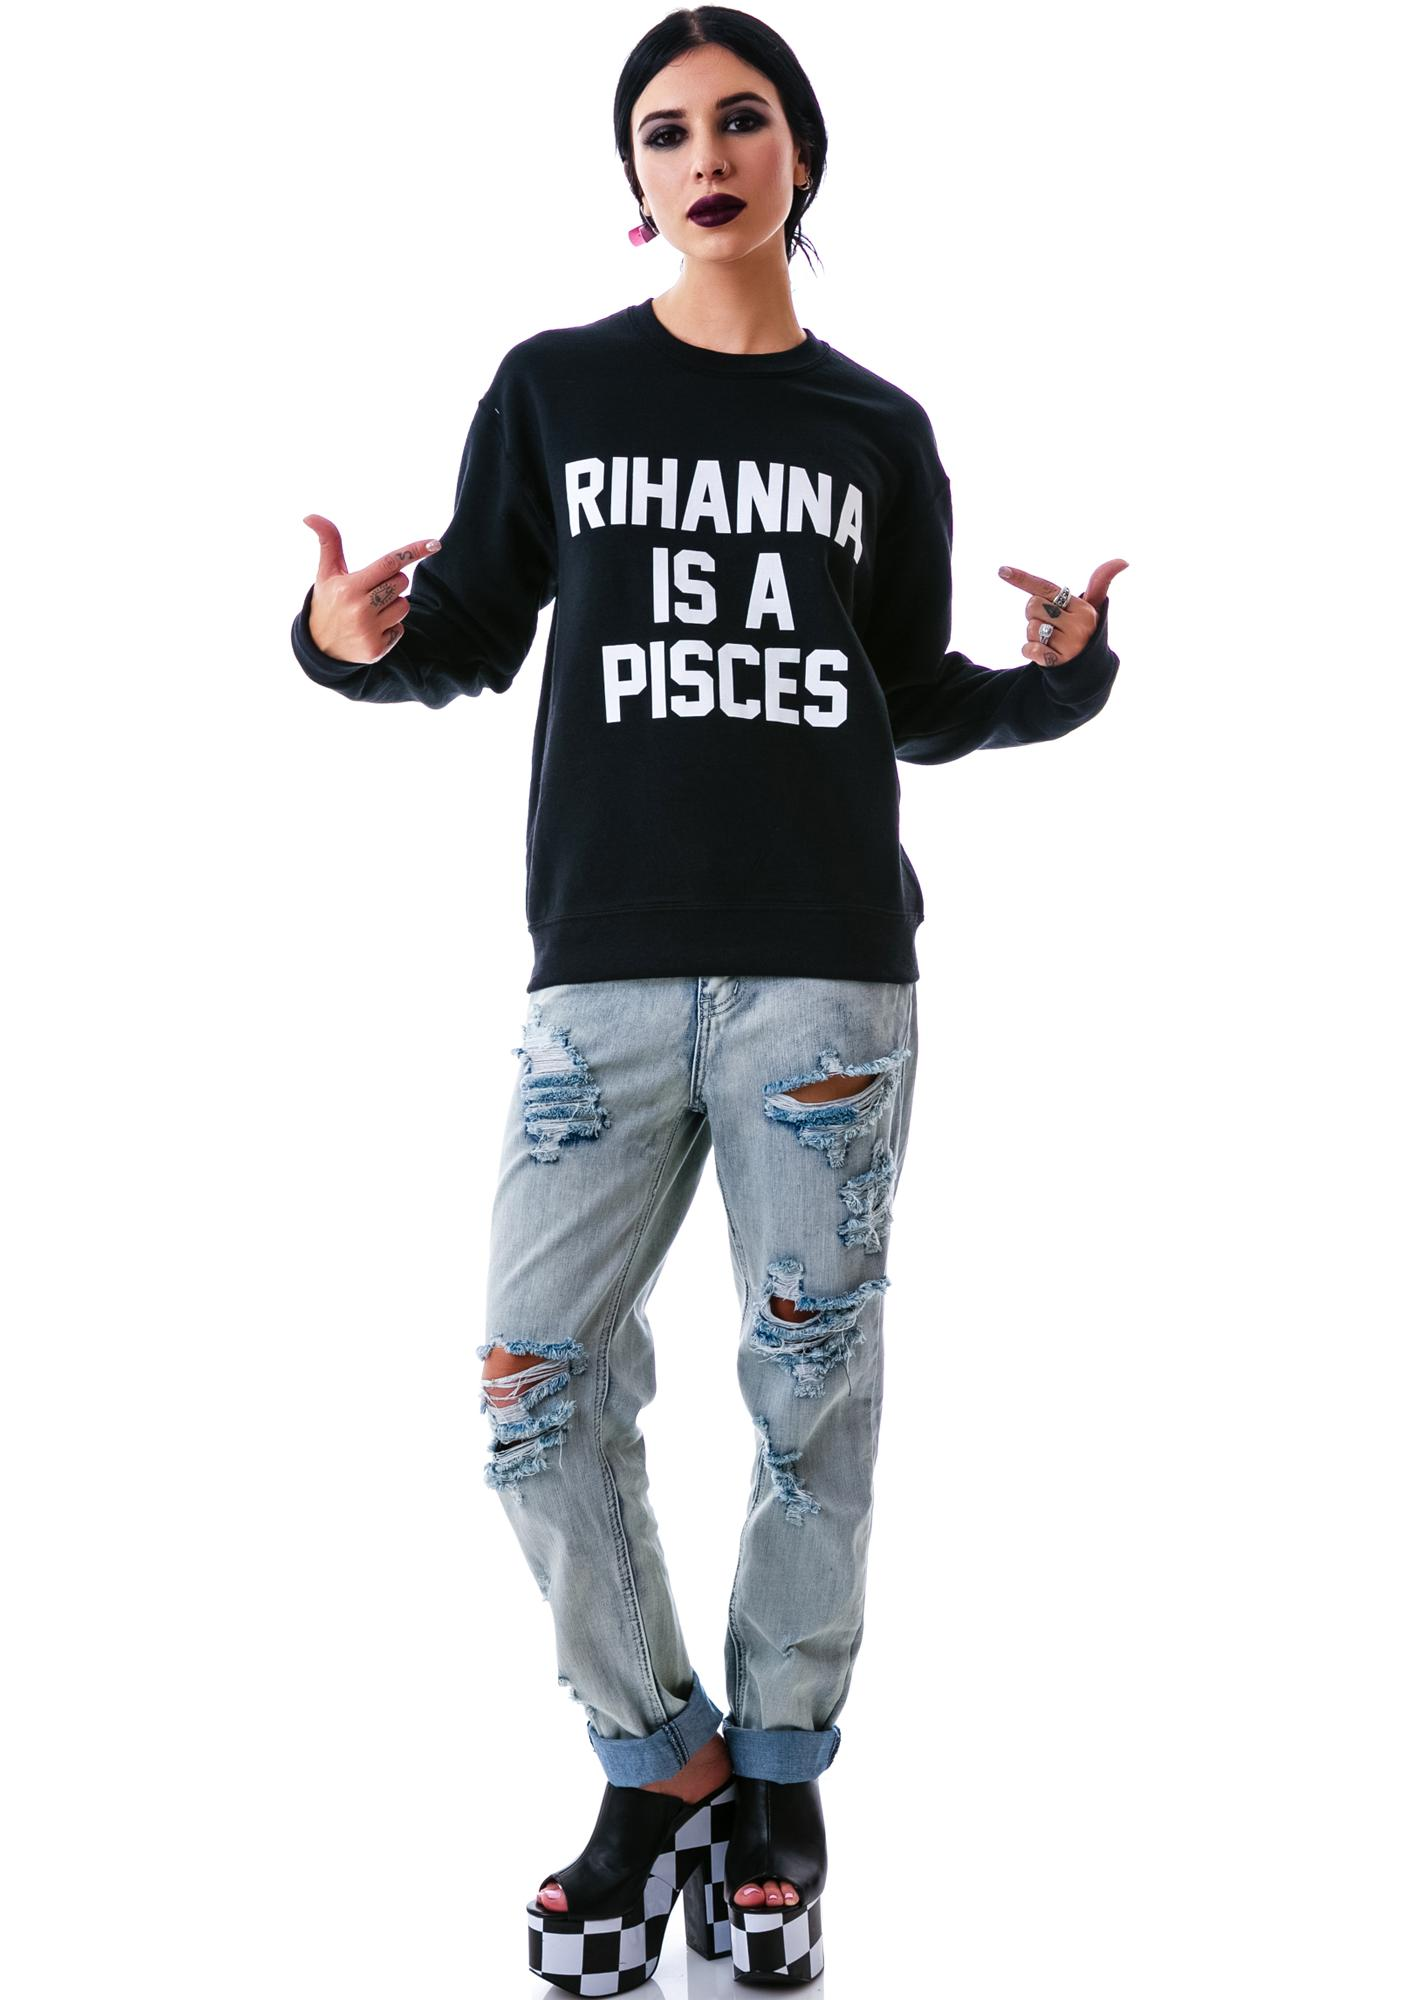 Private Party Rihanna Sweatshirt